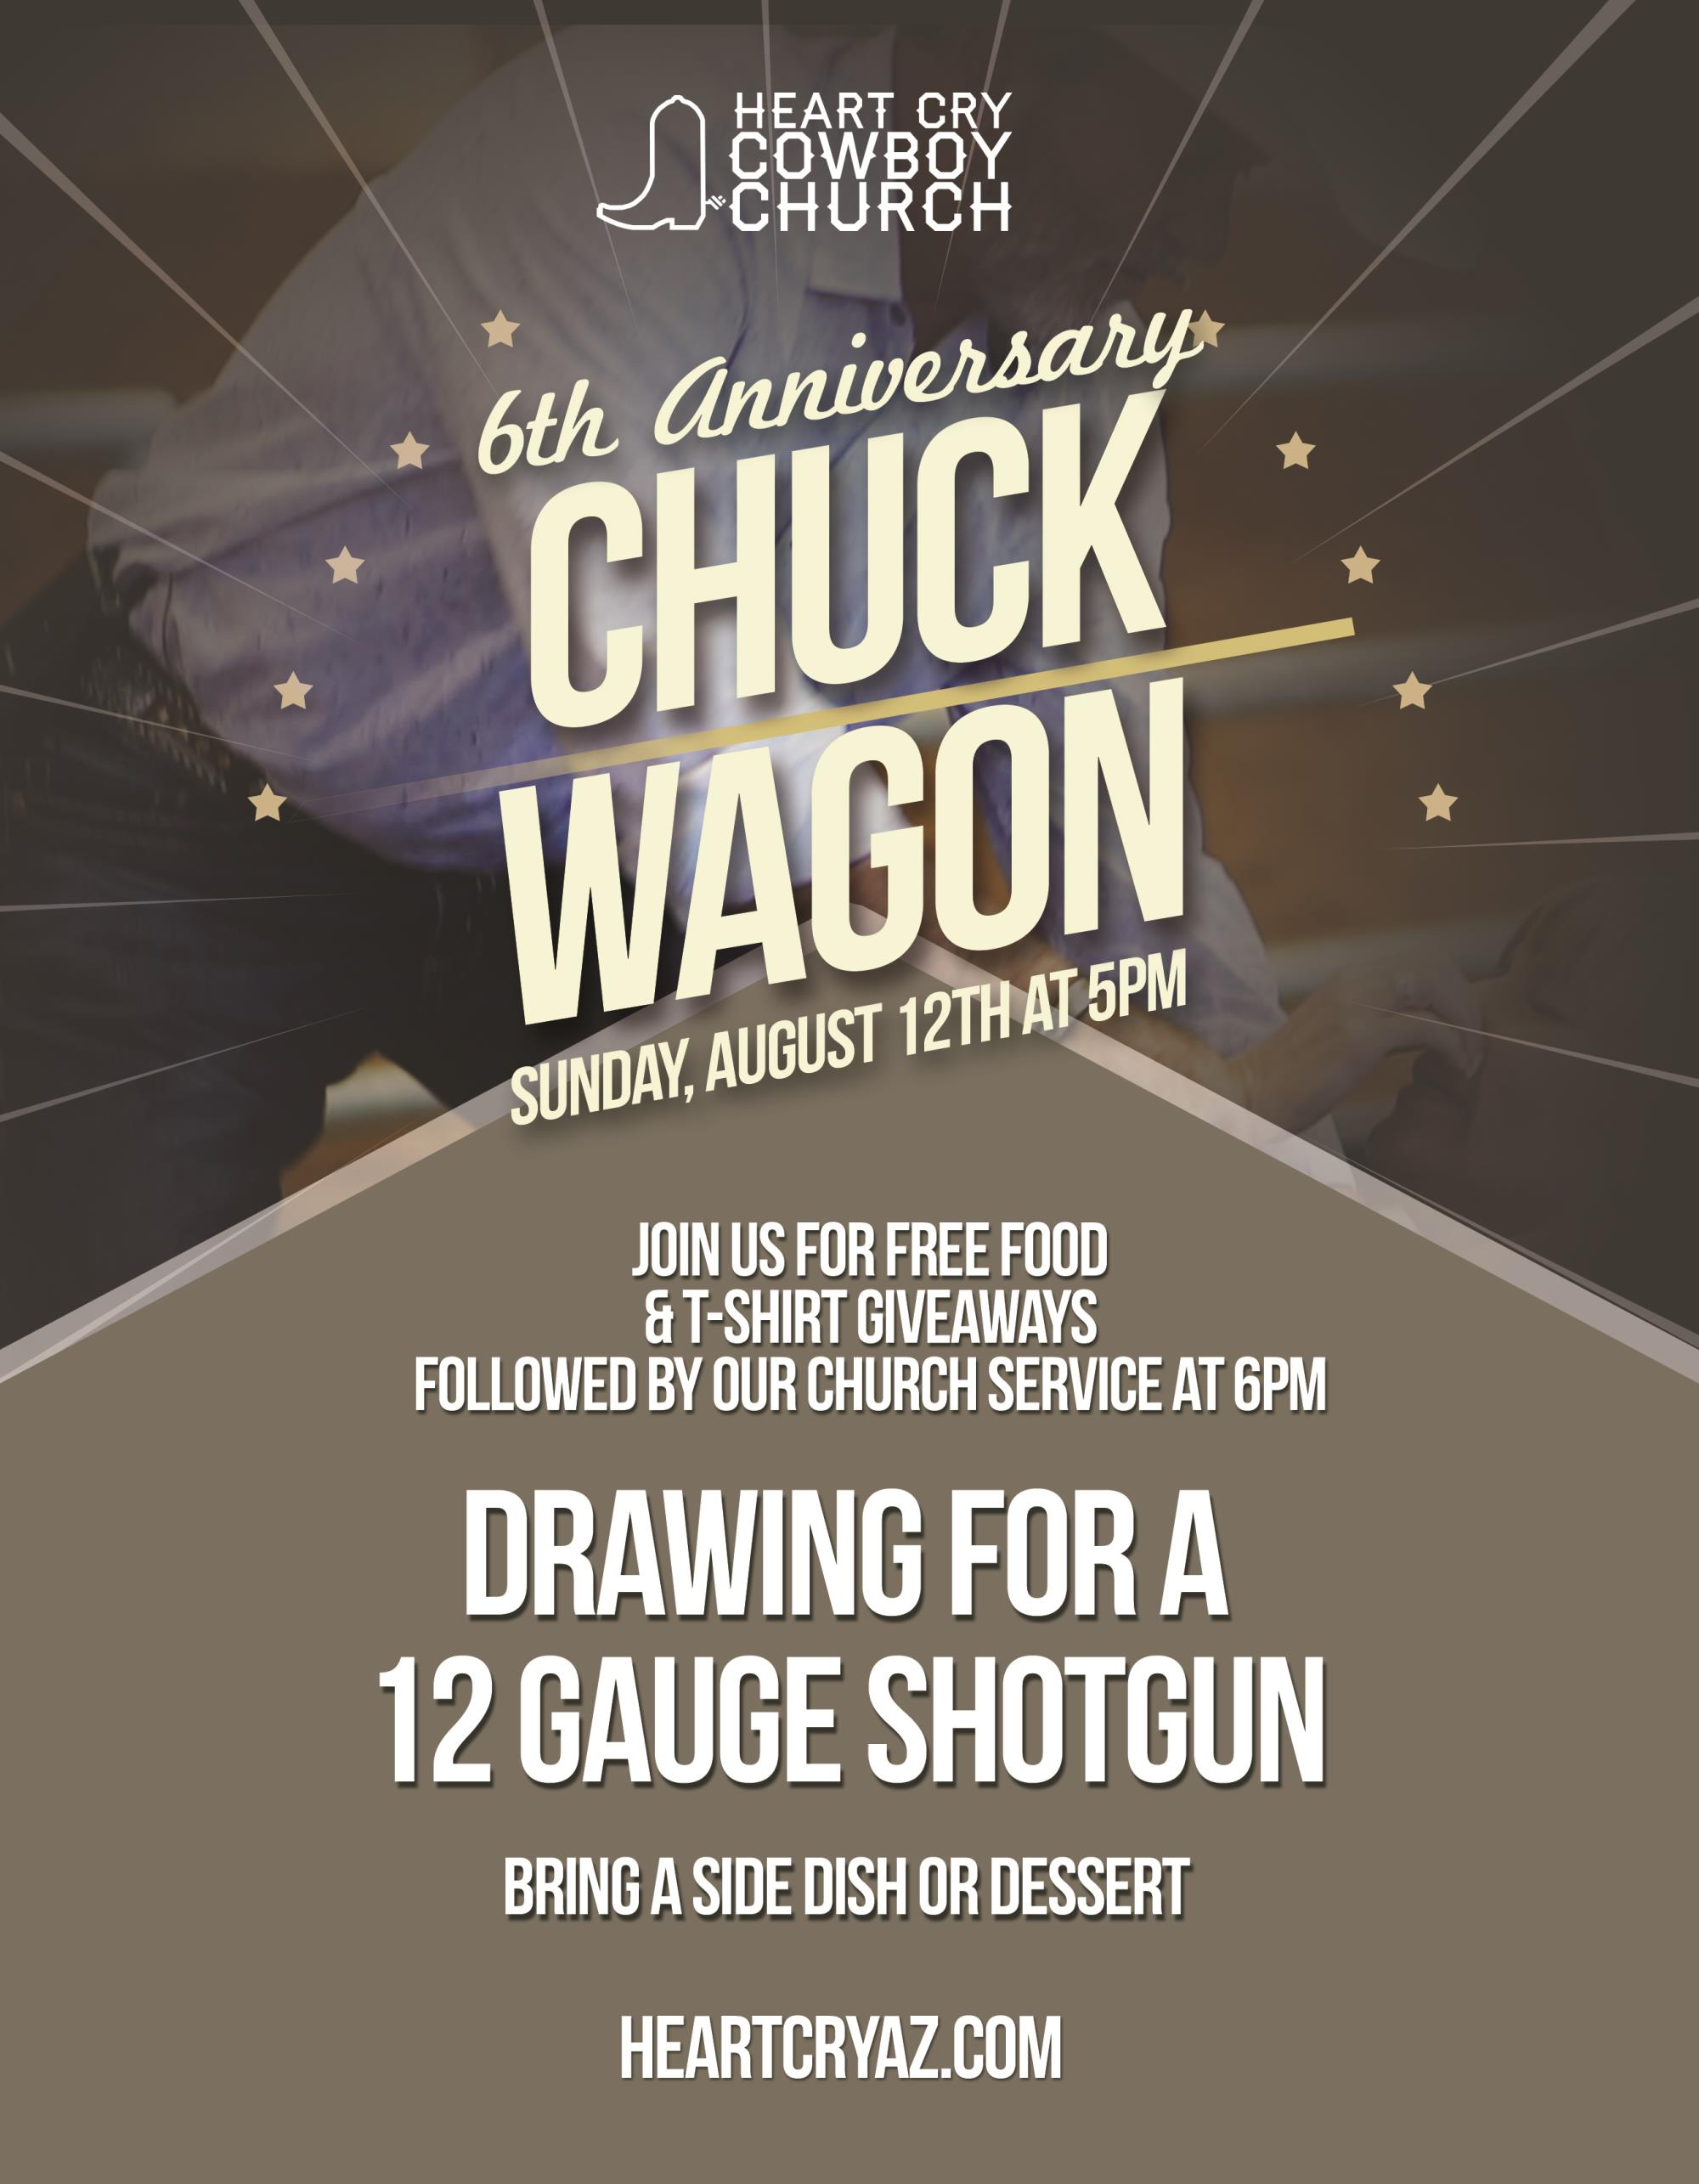 Aug 12 Chuckwagon